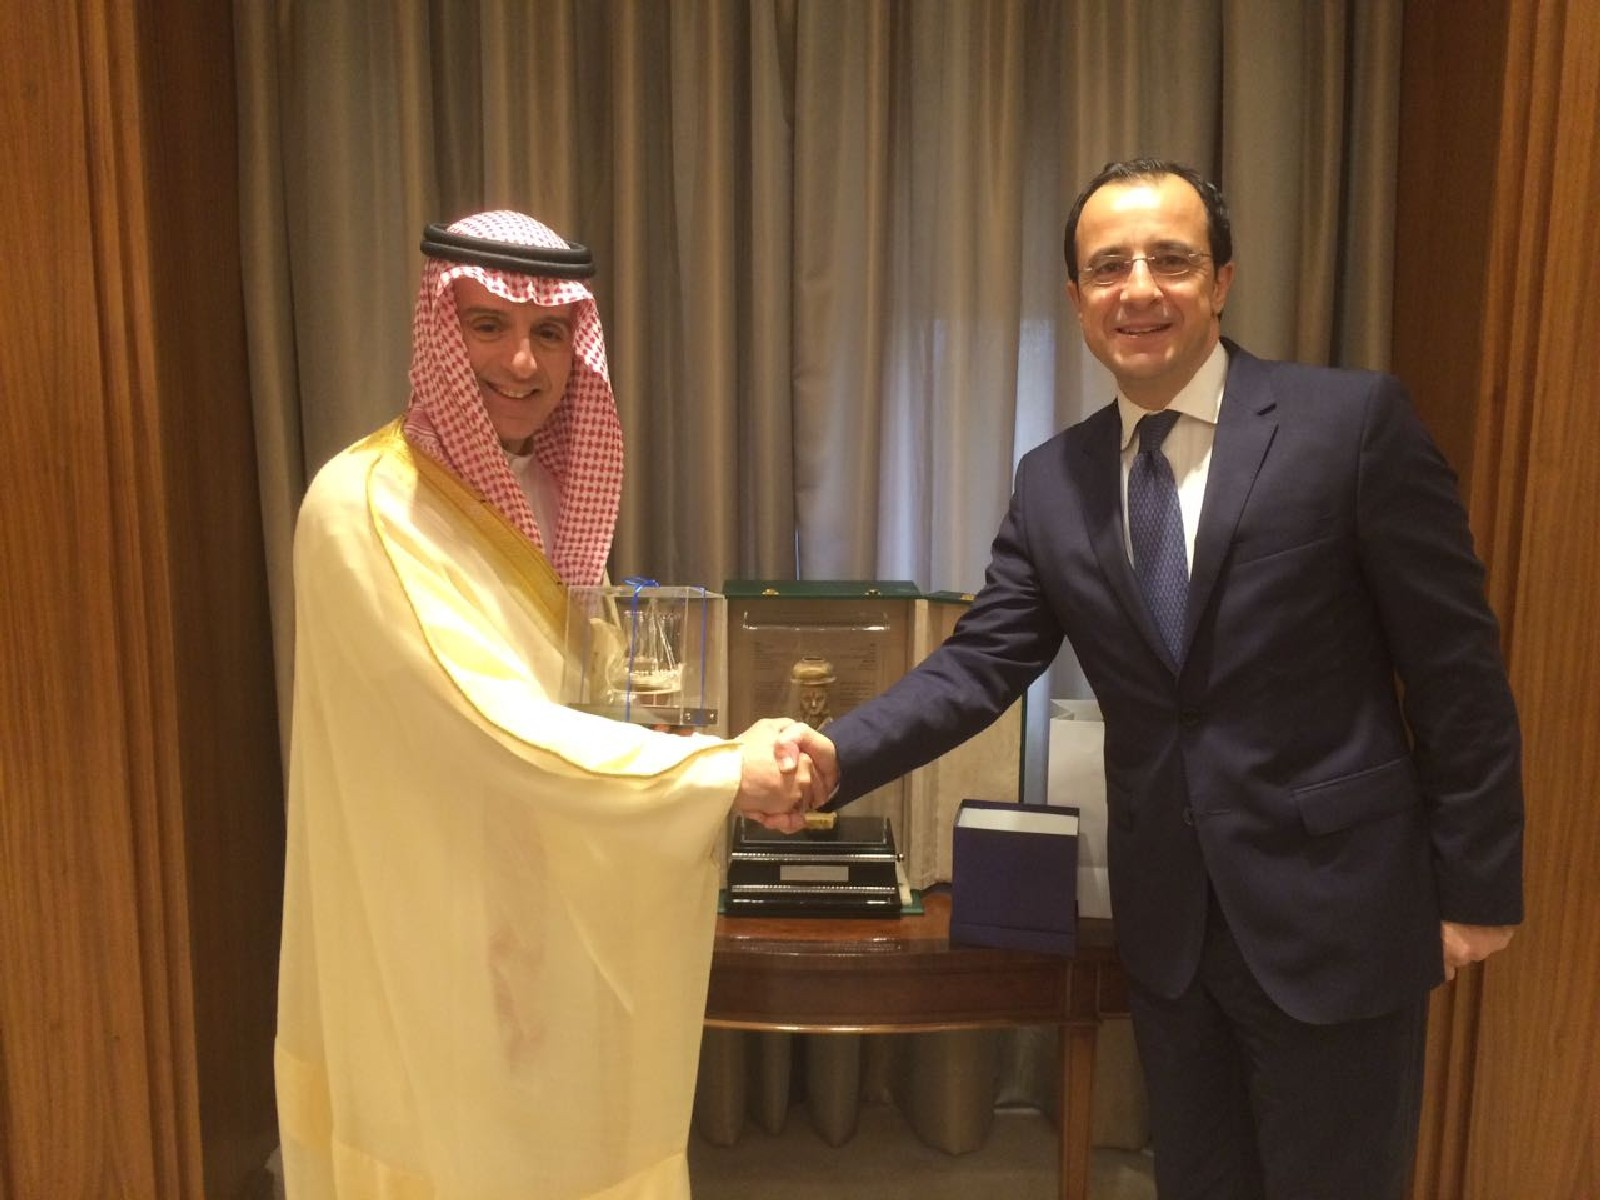 Cyprus' and Saudi Arabia's Foreign Ministers strengthen cooperation with signing of bilateral agreements in Riyadh